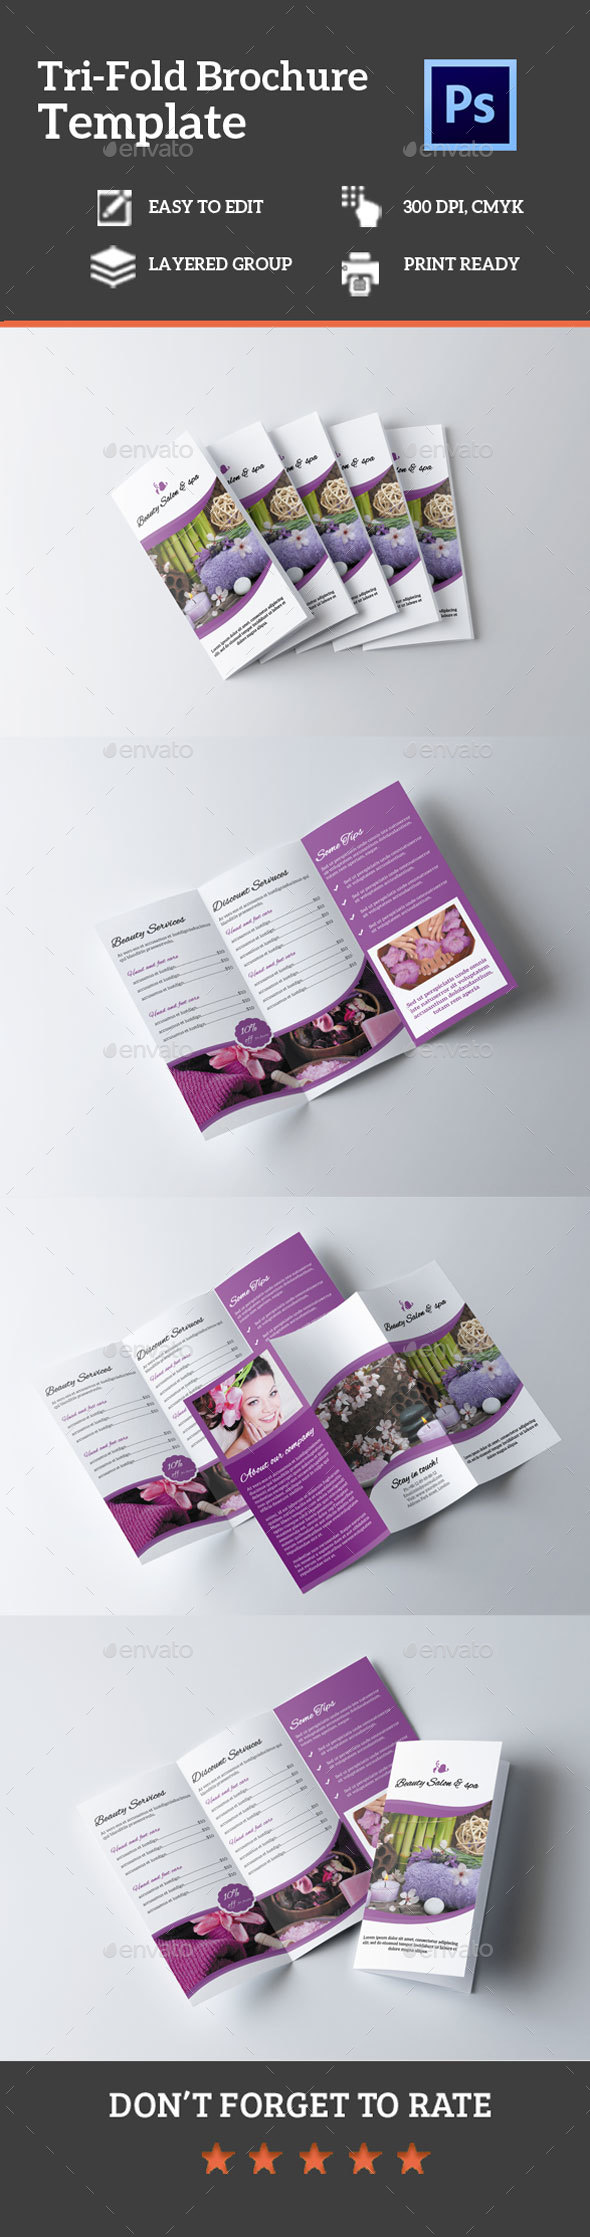 Beauty Salon Tri-fold Brochure - Brochures Print Templates